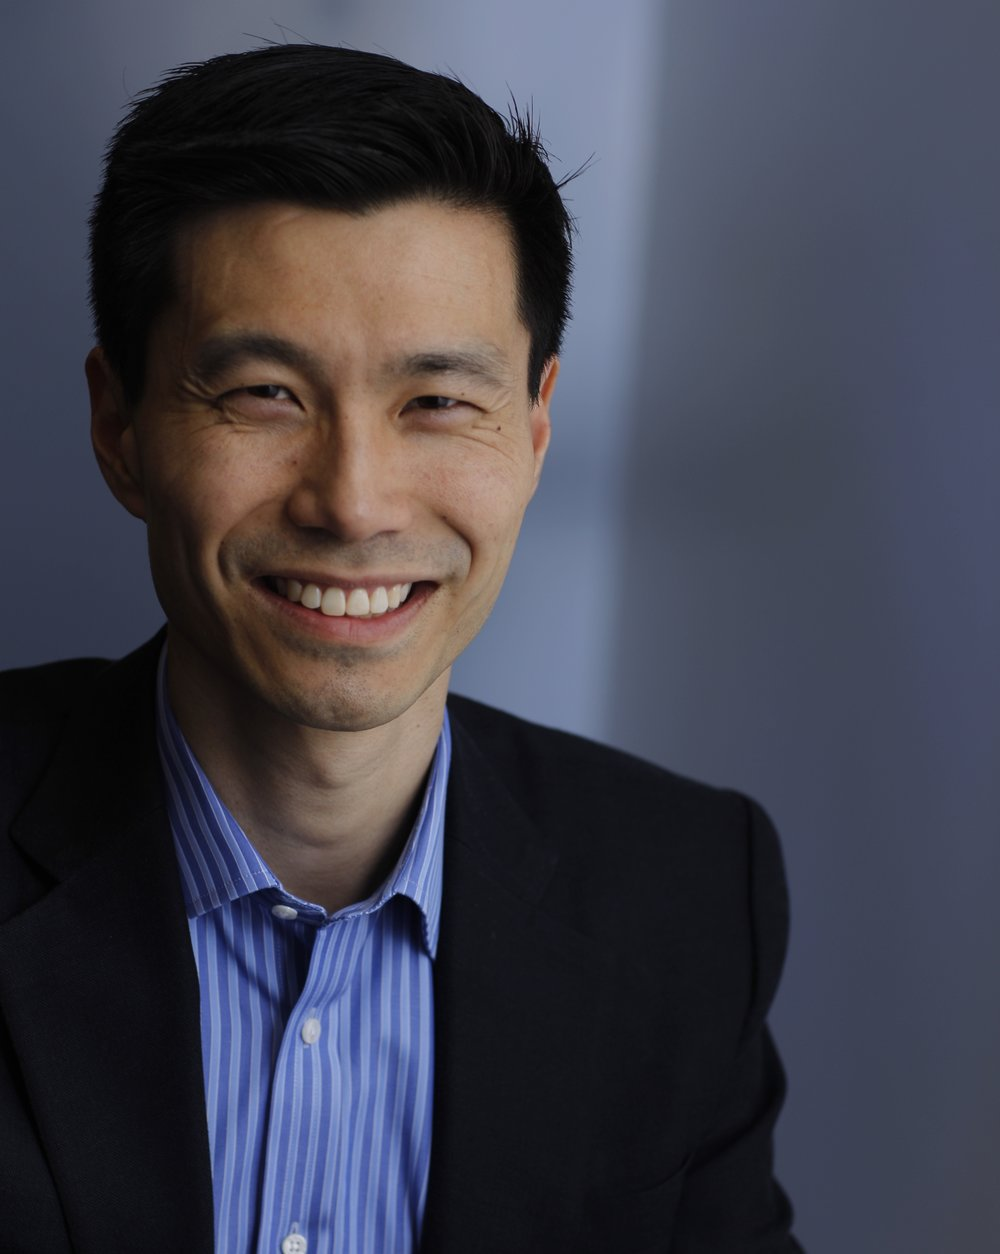 H.Lim-head shot.JPG